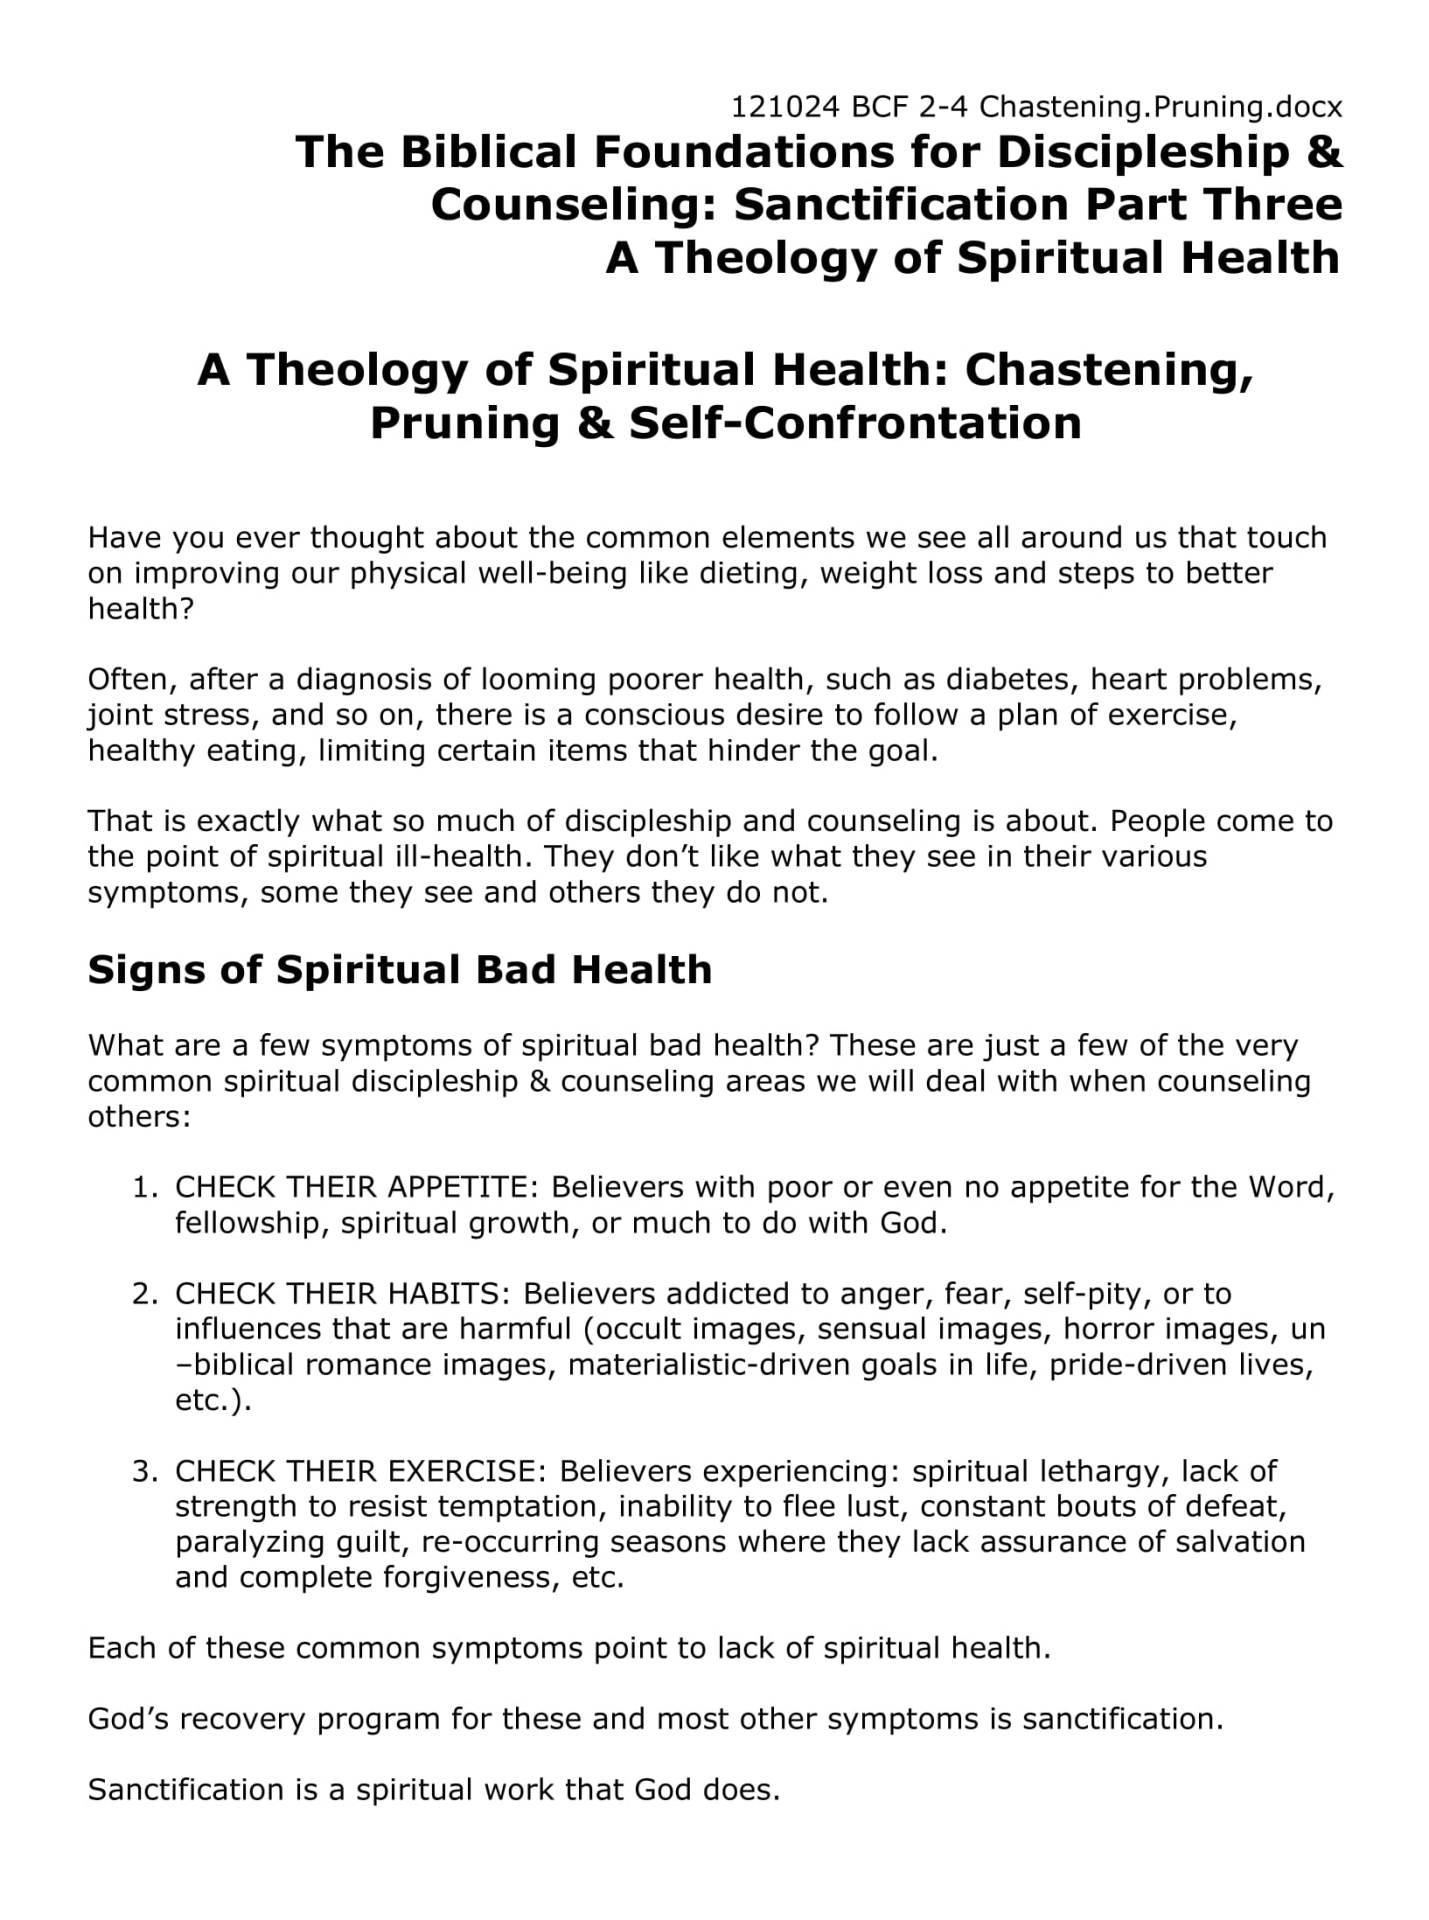 BC&D-07 - A Theology Of Spiritual Health - Chastening, Pruning, And Self-Confrontation-01